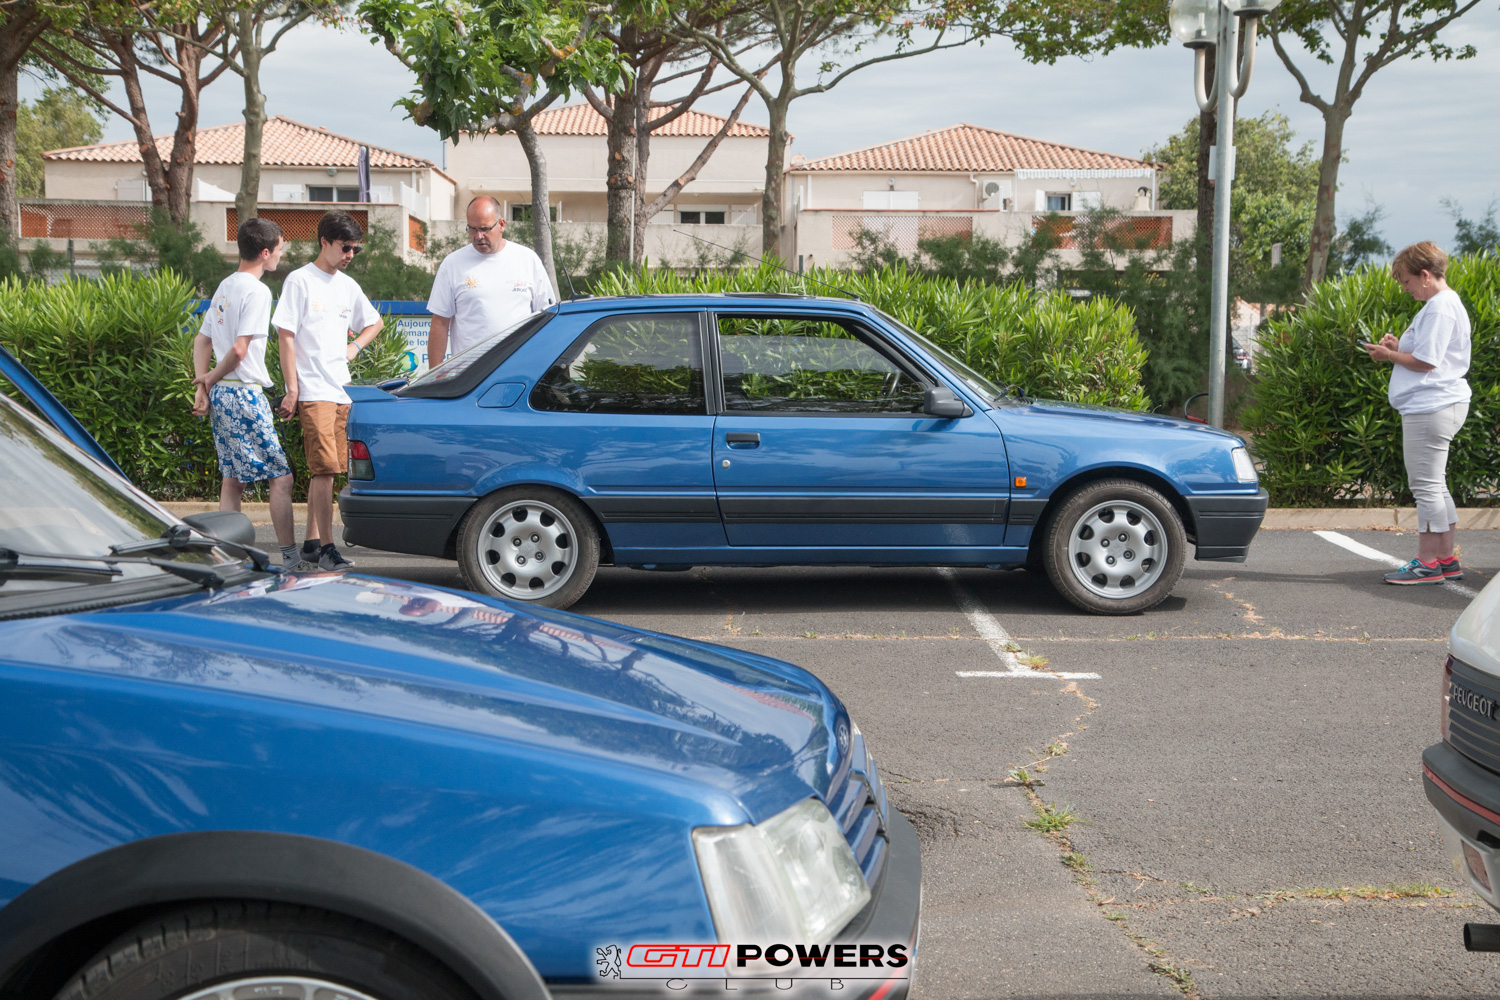 [GTIPOWERS DAYS] Nationale #4 - 8-9-10 Juin 2019 - Beziers - Page 8 Gtipow63